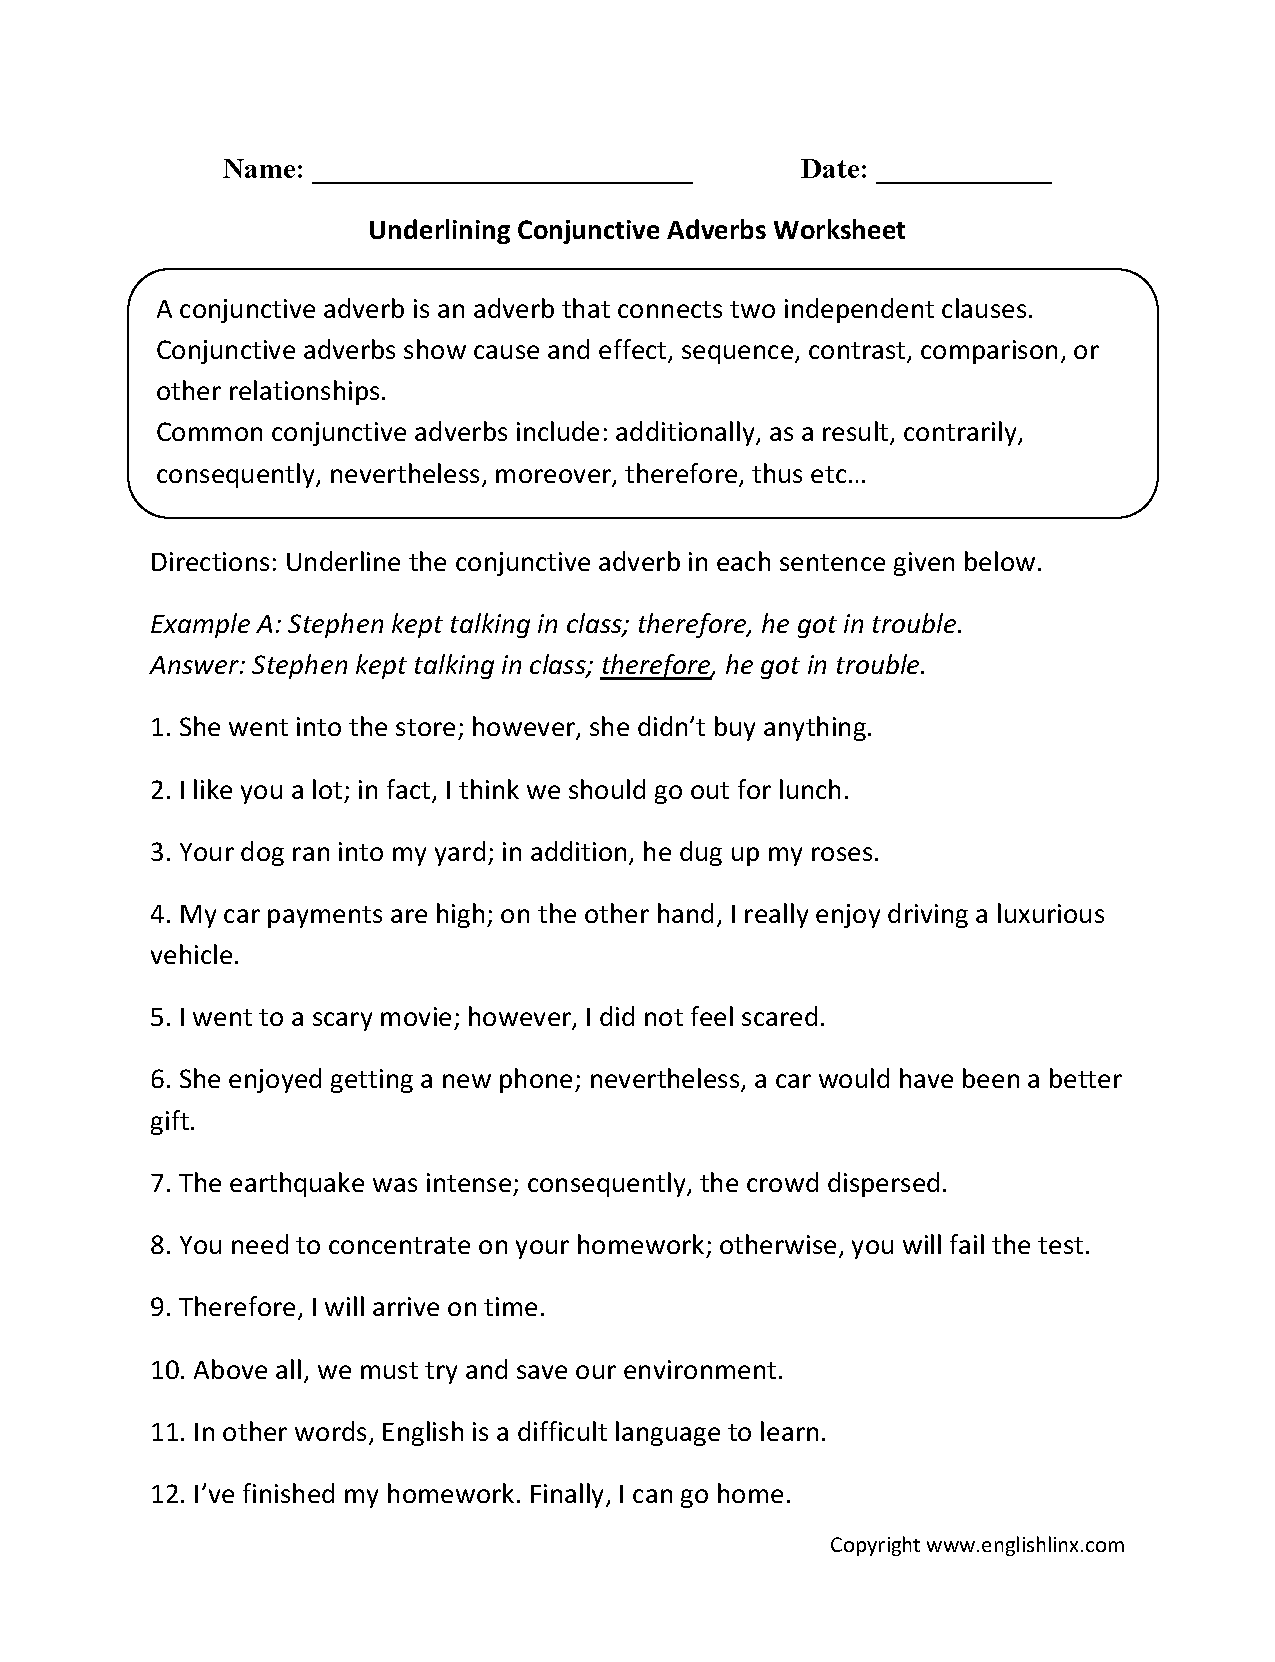 Proatmealus  Prepossessing Englishlinxcom  Conjunctions Worksheets With Likable Worksheet With Endearing Greater Than Less Than Worksheets Second Grade Also Preschool Printable Worksheets Alphabet In Addition Plus  Worksheets And Monthly Expense Worksheet Excel As Well As Compound Complex Sentences Worksheets Additionally Multiplying By  Worksheet From Englishlinxcom With Proatmealus  Likable Englishlinxcom  Conjunctions Worksheets With Endearing Worksheet And Prepossessing Greater Than Less Than Worksheets Second Grade Also Preschool Printable Worksheets Alphabet In Addition Plus  Worksheets From Englishlinxcom